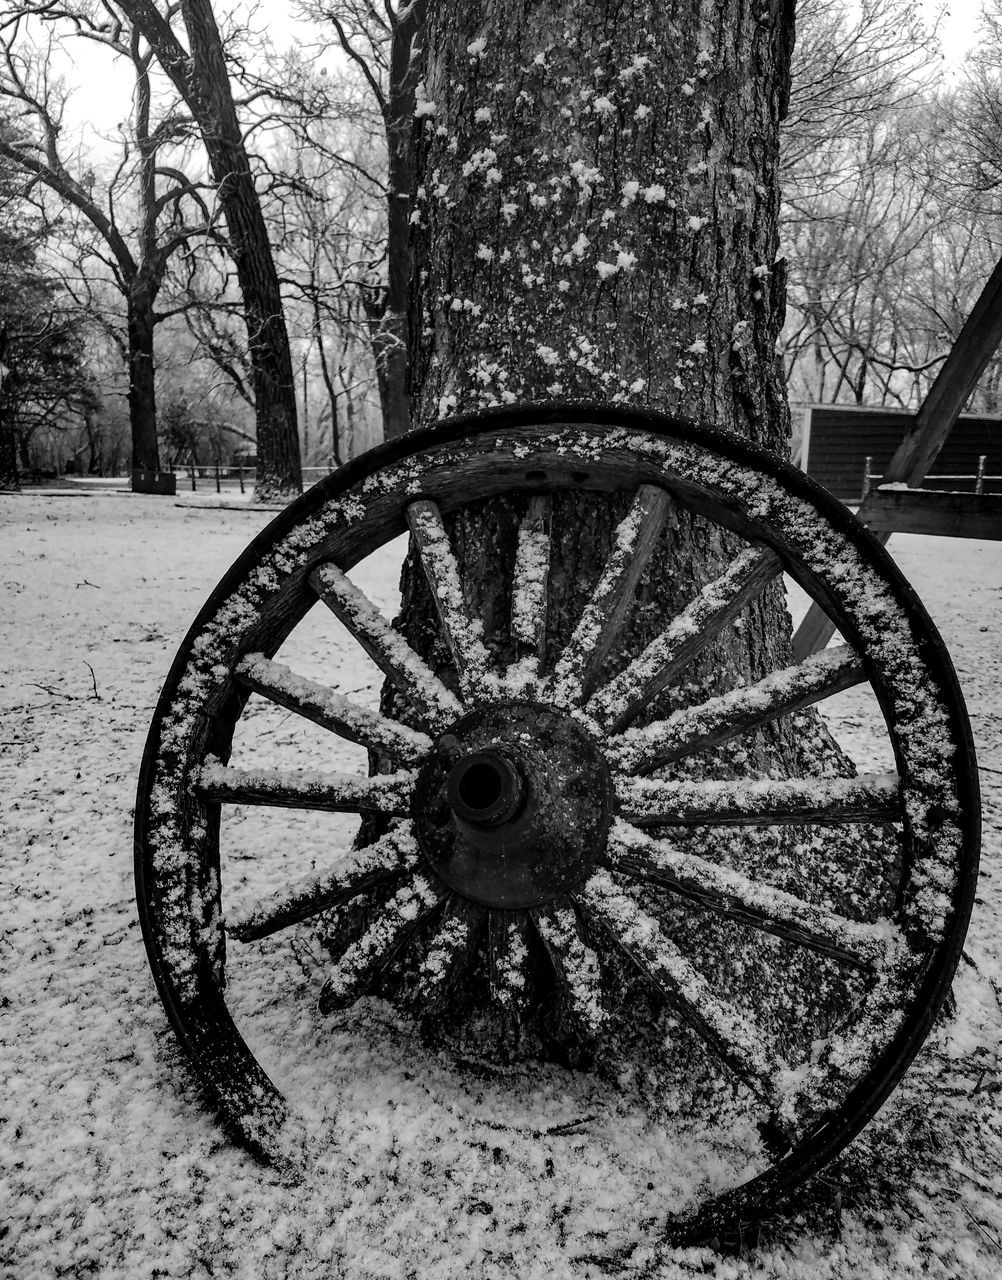 tree, bare tree, tree trunk, snow, winter, cold temperature, outdoors, day, no people, wagon wheel, branch, wheel, nature, old-fashioned, beauty in nature, close-up